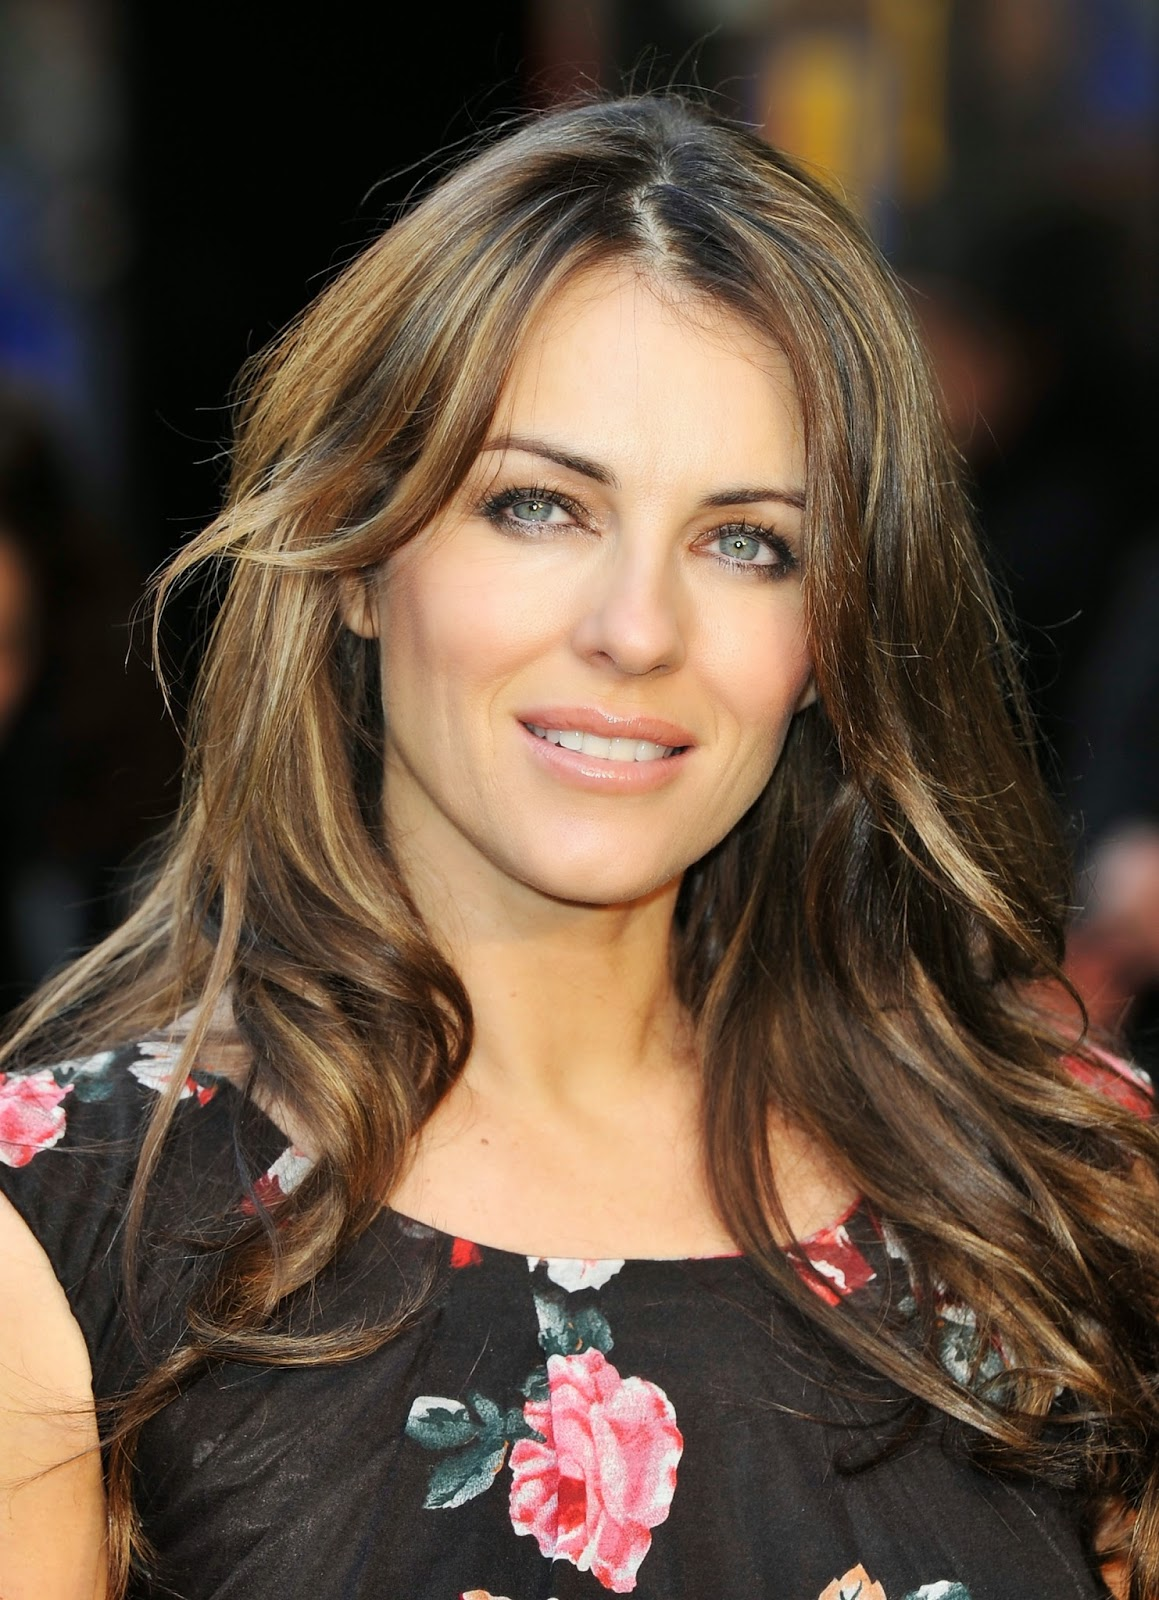 Actress, Affair, Bill Clinton, Elizabeth Hurley, Elizabeth Hurley affair with Bill Clinton, Hollywood, Love Affair, Model, News, Politician, Politics, President, Showbiz, USA,